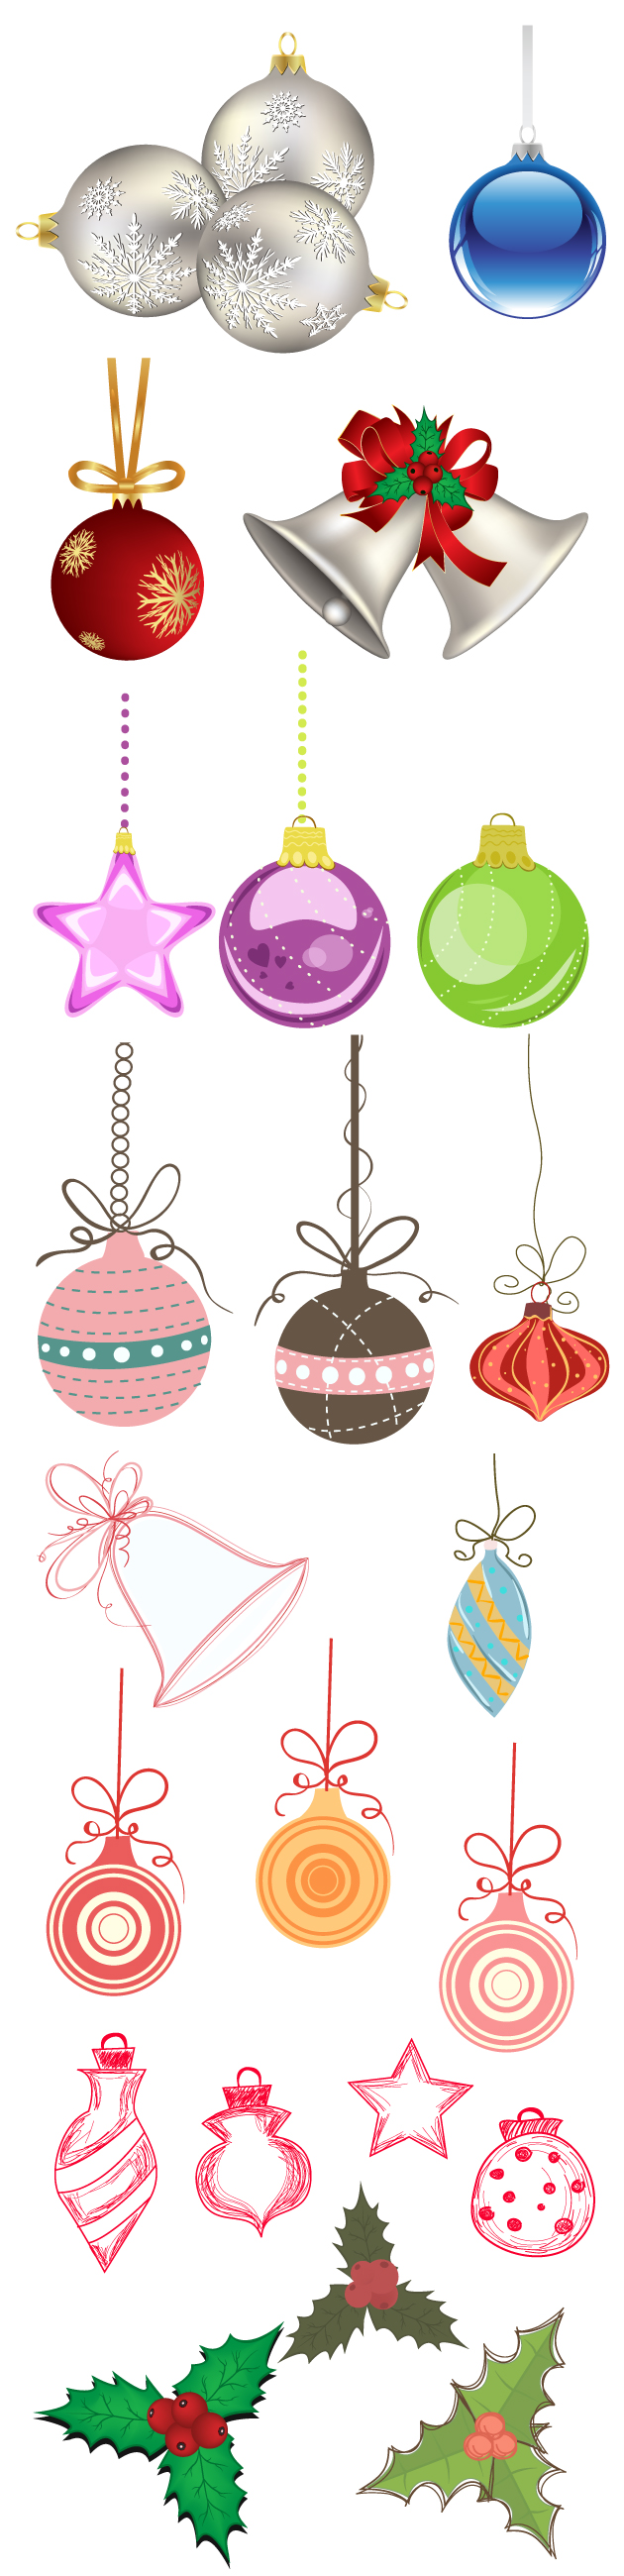 Christmas Tree Ornaments Vector designtnt christmas tree ornaments vector large